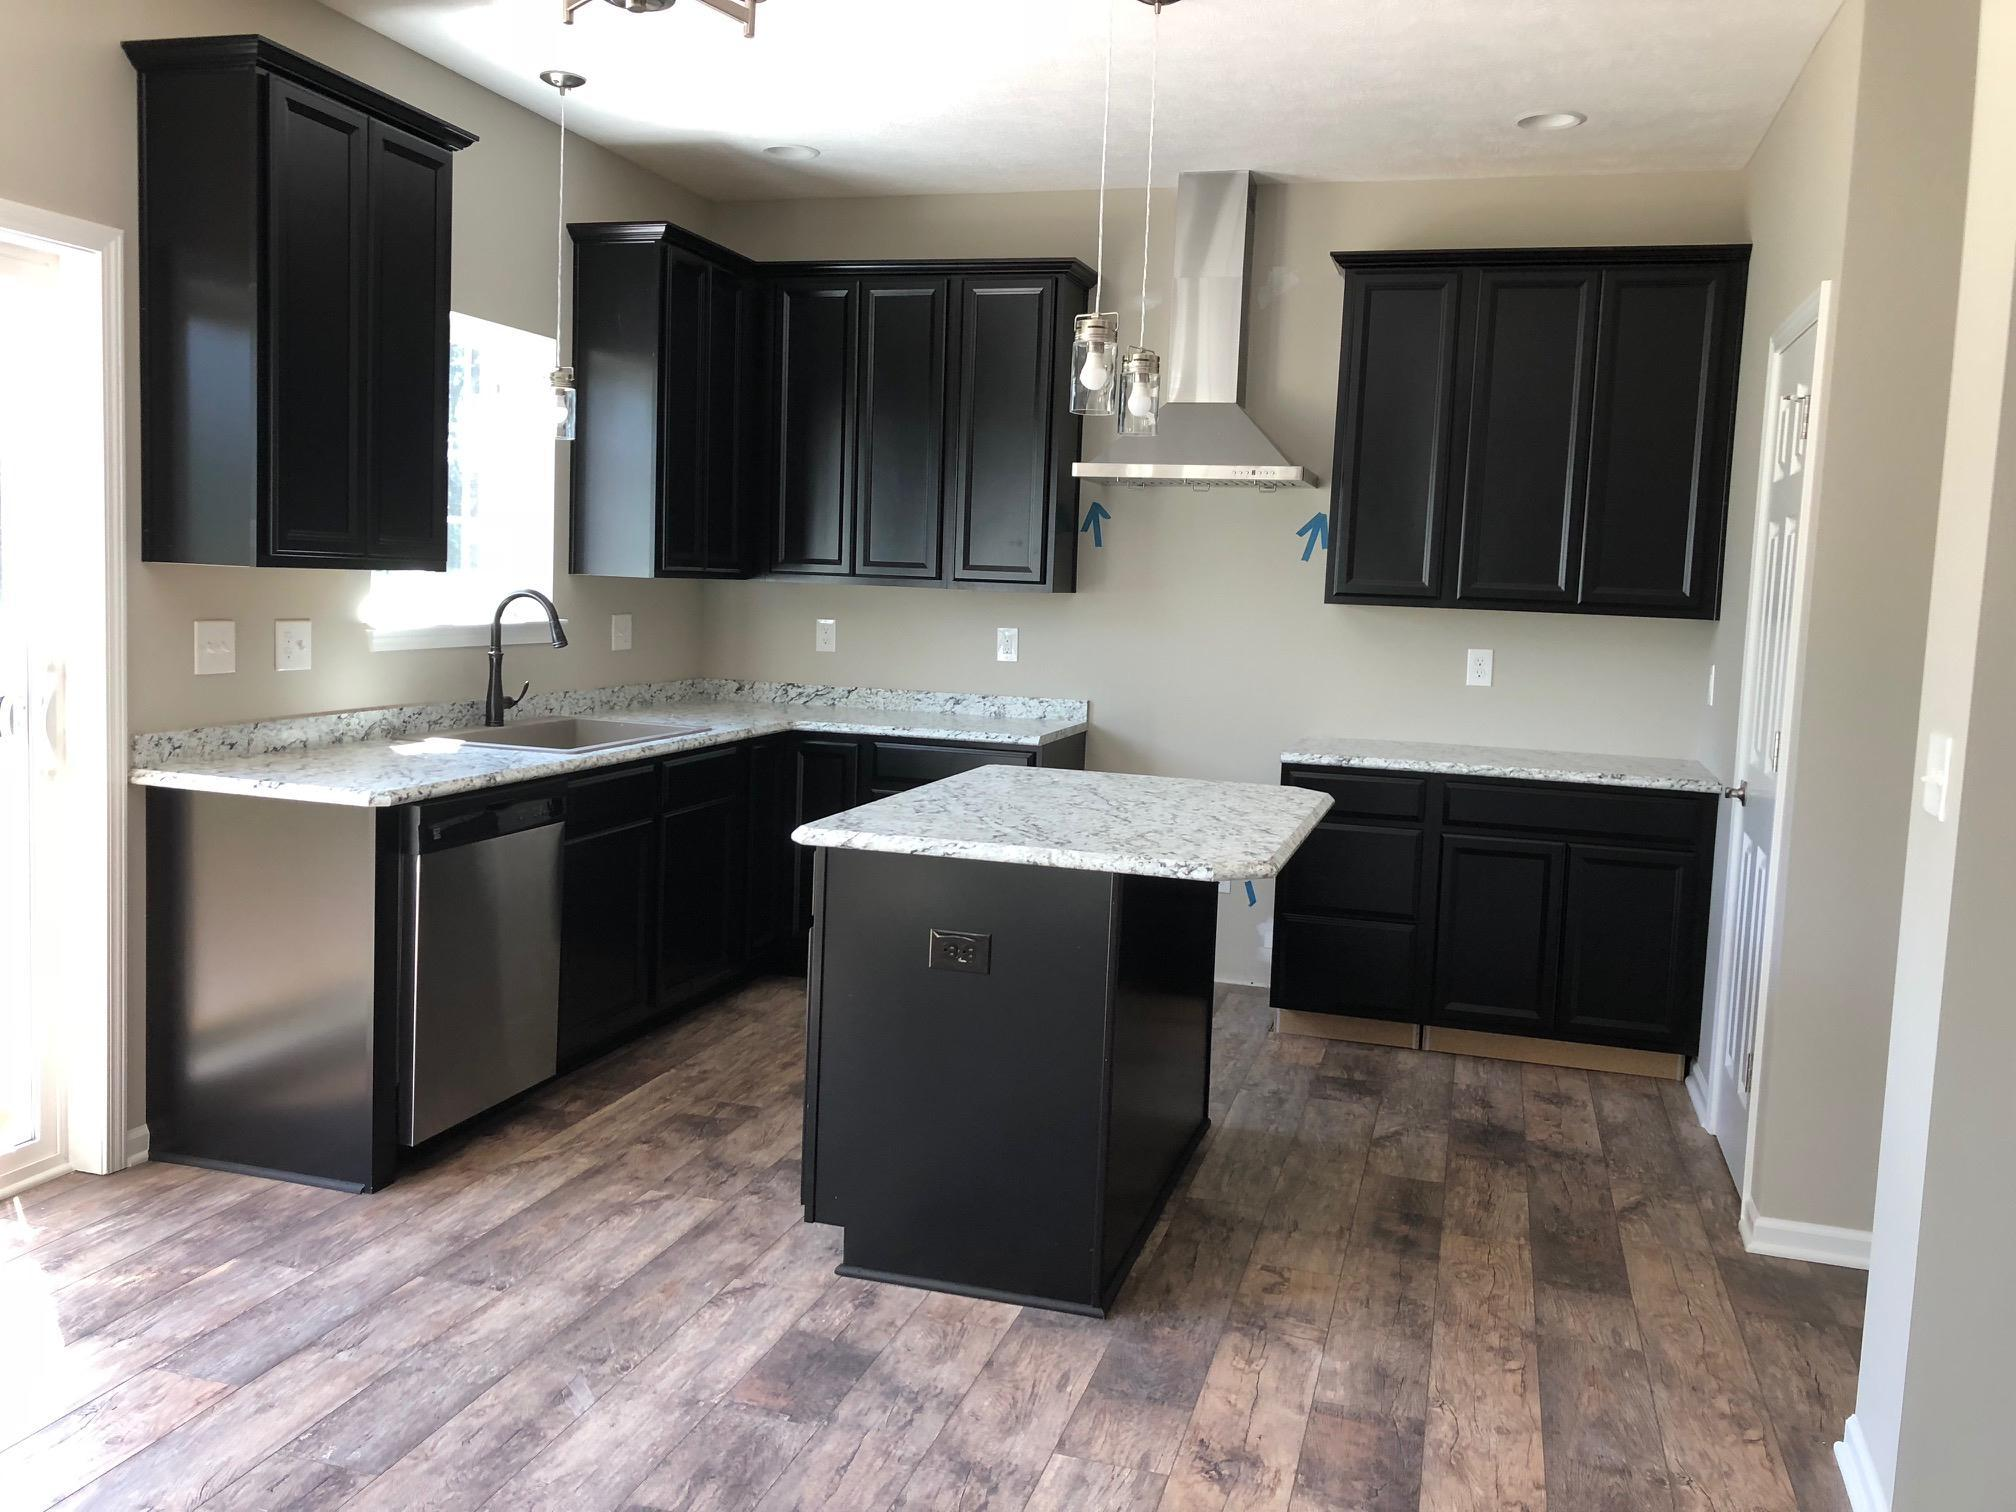 Kitchen featured in the Hampton II By CVE Homes in Jackson, MI